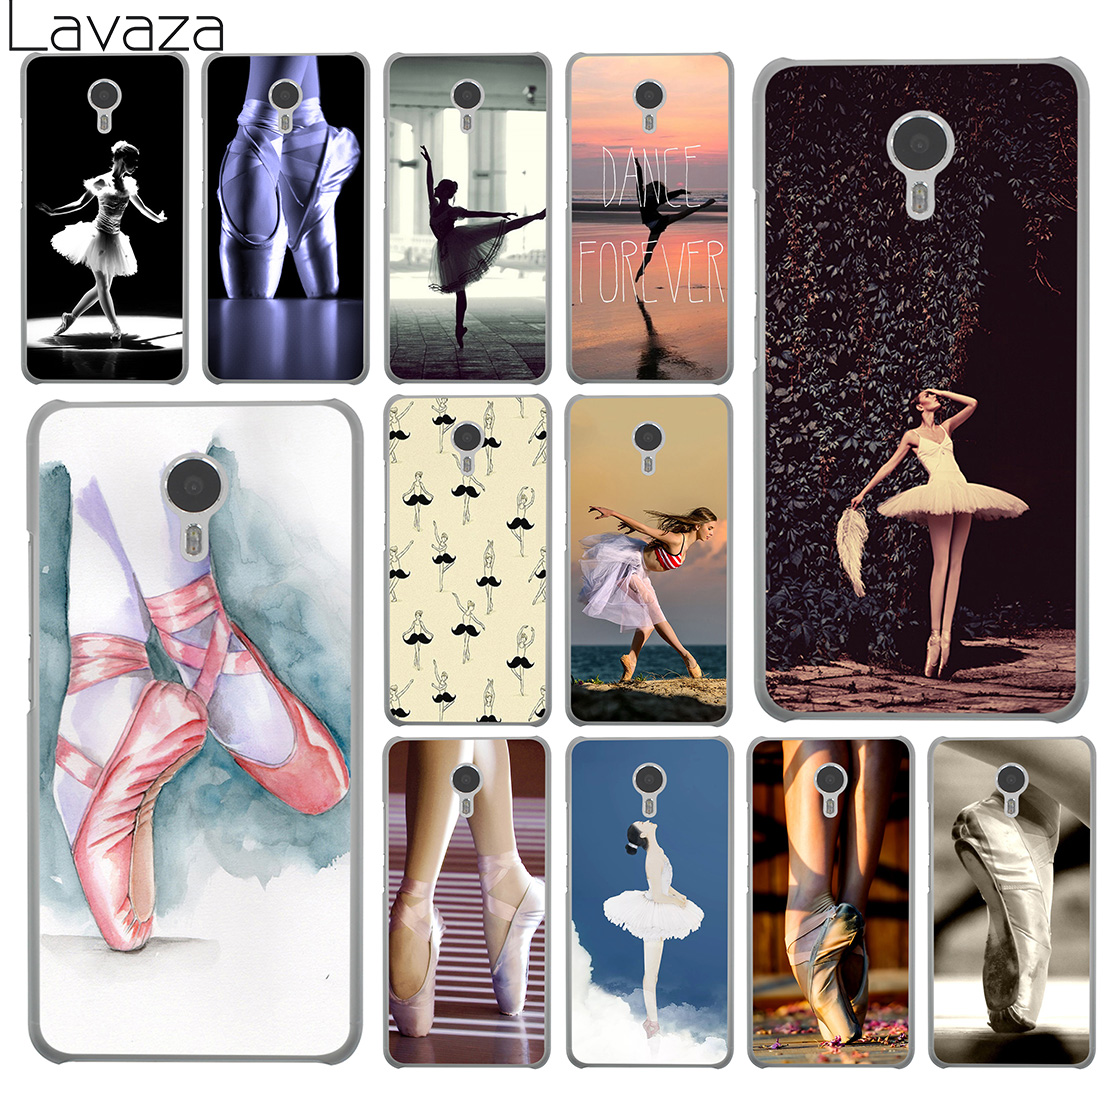 Lavaza Dancing Girl Dance Ballet sneaker Pointe Shoes Hard Case for Meizu M6 M5 M5C M5S M3 M3S M2 Mini Note U10 U20 Pro 7 Plus 6